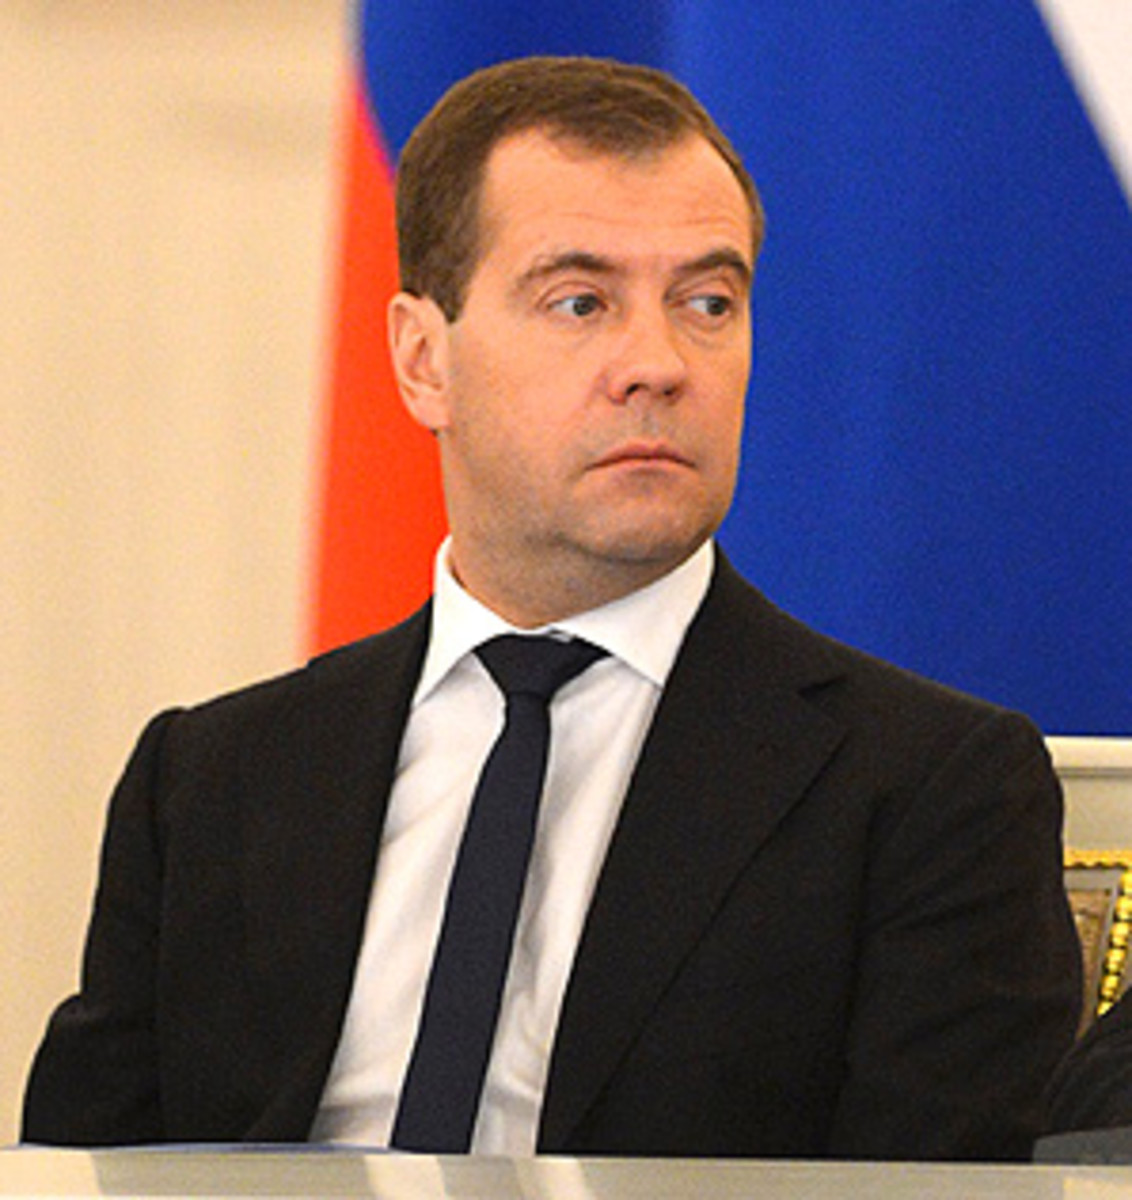 130207151934-dmitry-medvedev-1-single-image-cut.jpg